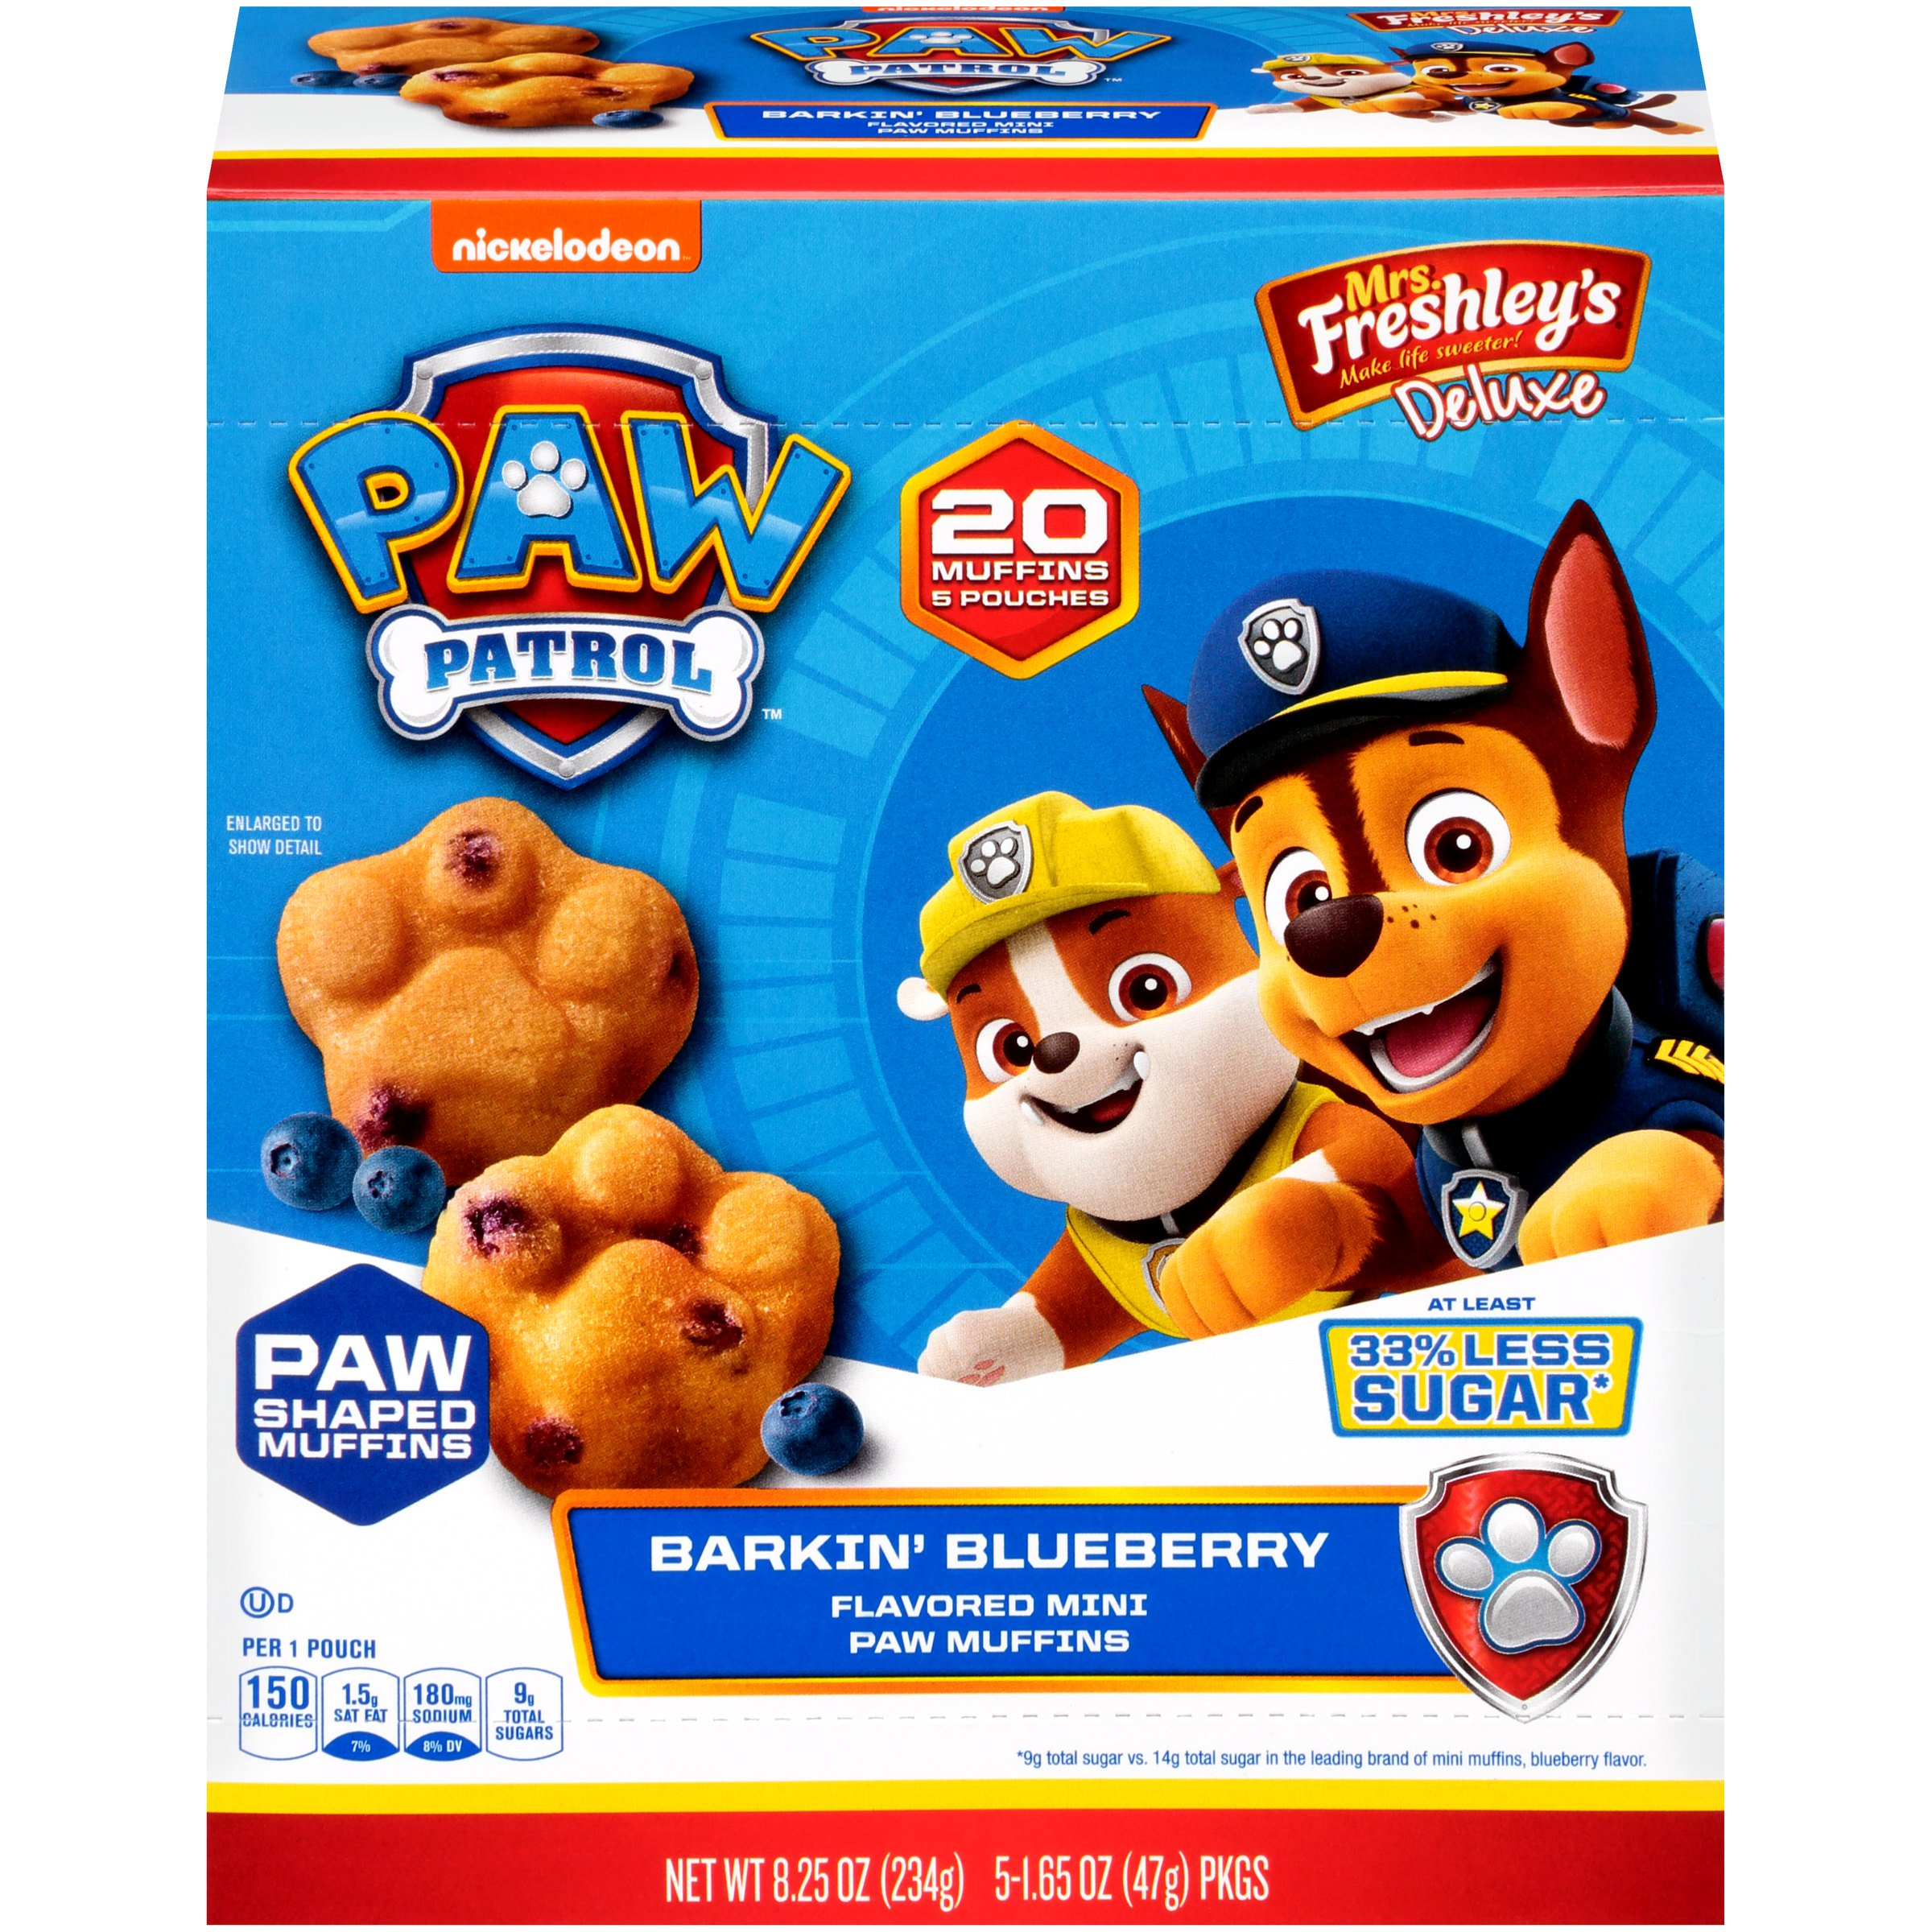 Mrs. Freshleys Deluxe Paw Patrol Barkin Blueberry Mini Paw Muffins, 1.65 Oz, 5 Pack